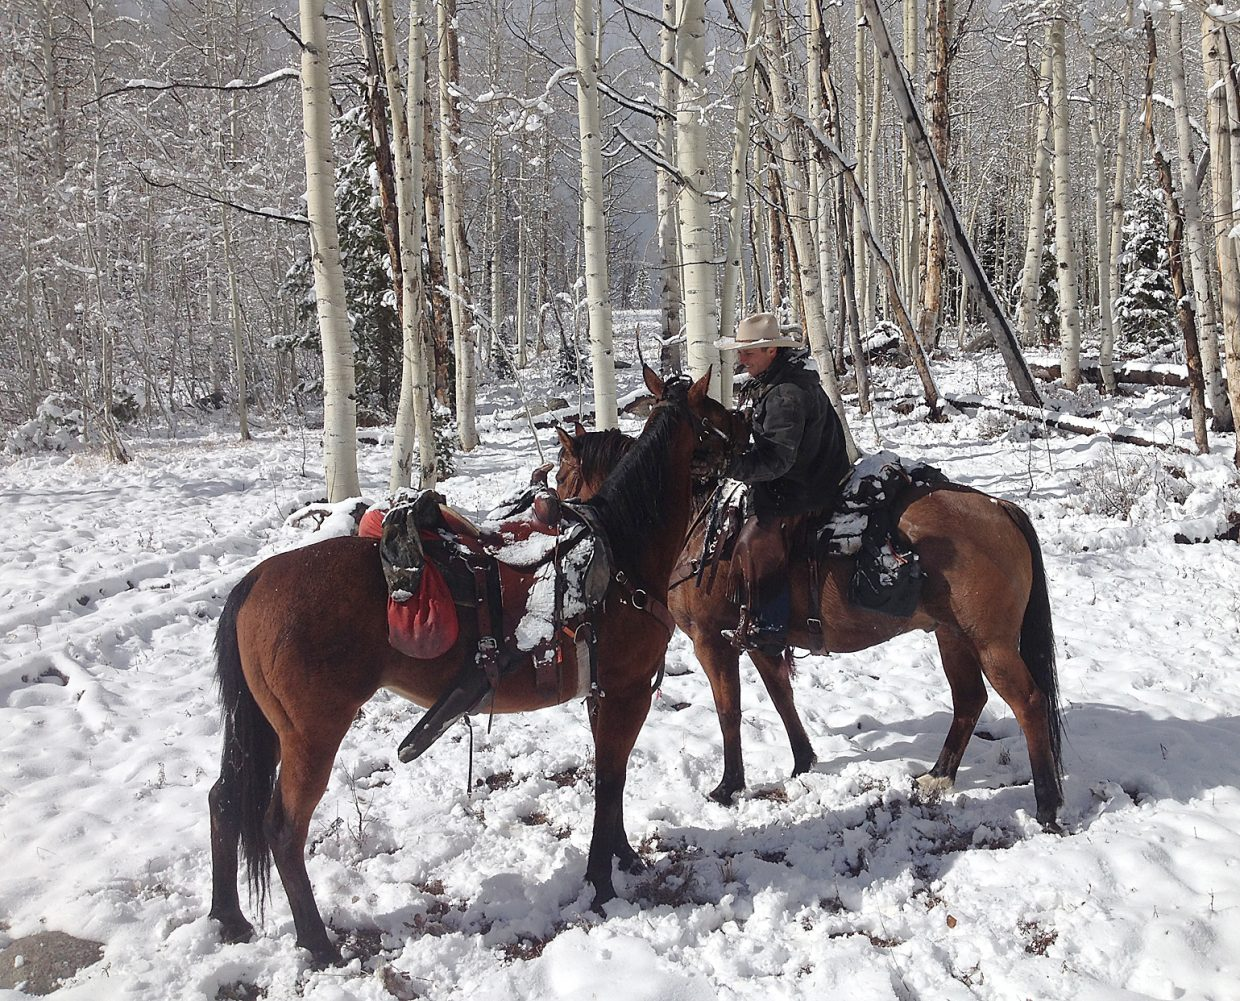 Sean Perkins, of Saddle Mountain Ranch, riding Jazz, gathers in a mare named Dolly on Oct. 27. Dolly had been missing since Sept. 20, when she unseated her rider while returning from a hunting trip in the area of Ditch Creek northwest of Steamboat Springs. The missing horse finally was located after she answered a loud whinny from Jazz.